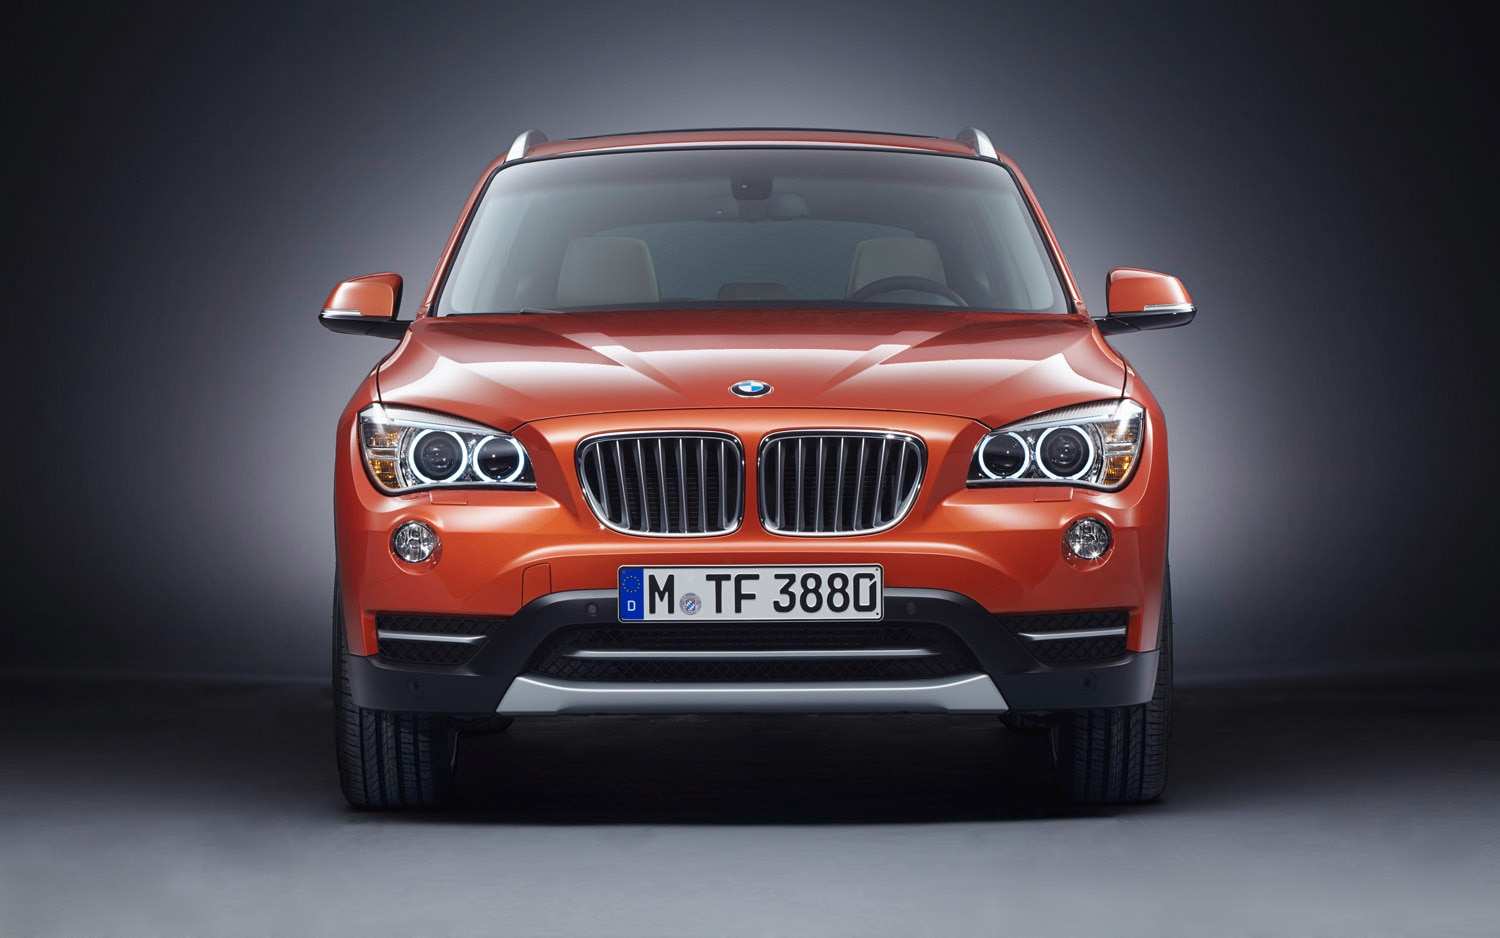 2012 BMW X1 Front View1